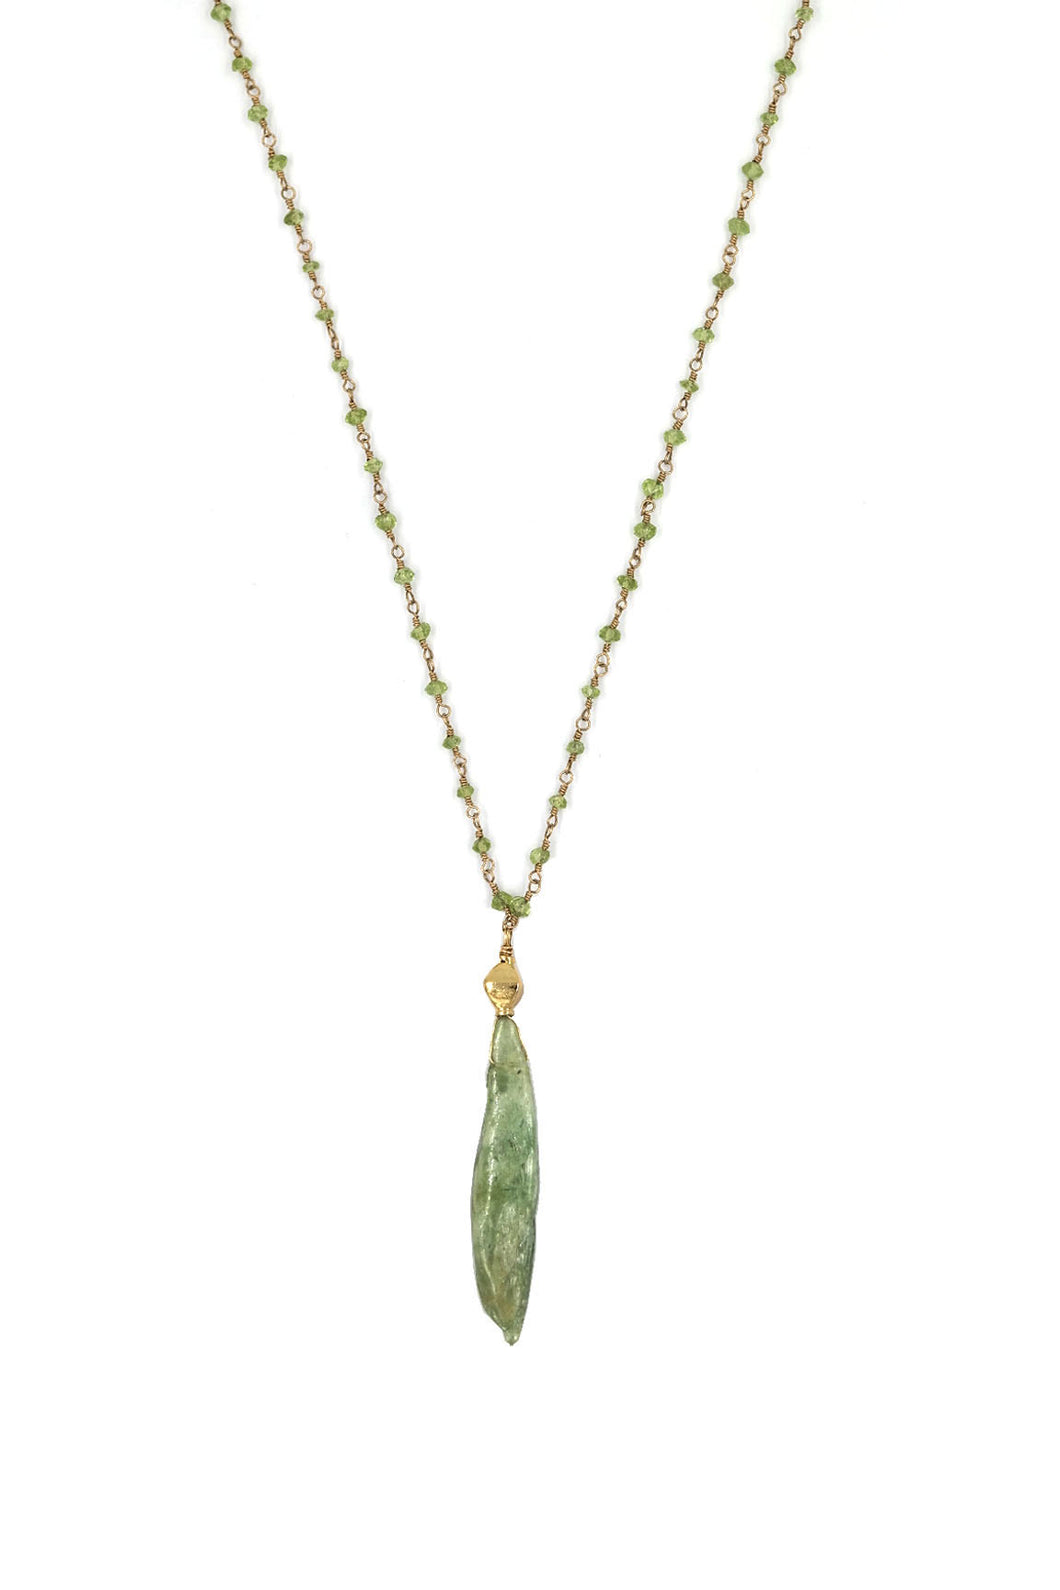 Peridot Rosary Long Necklace with Prenite Drop